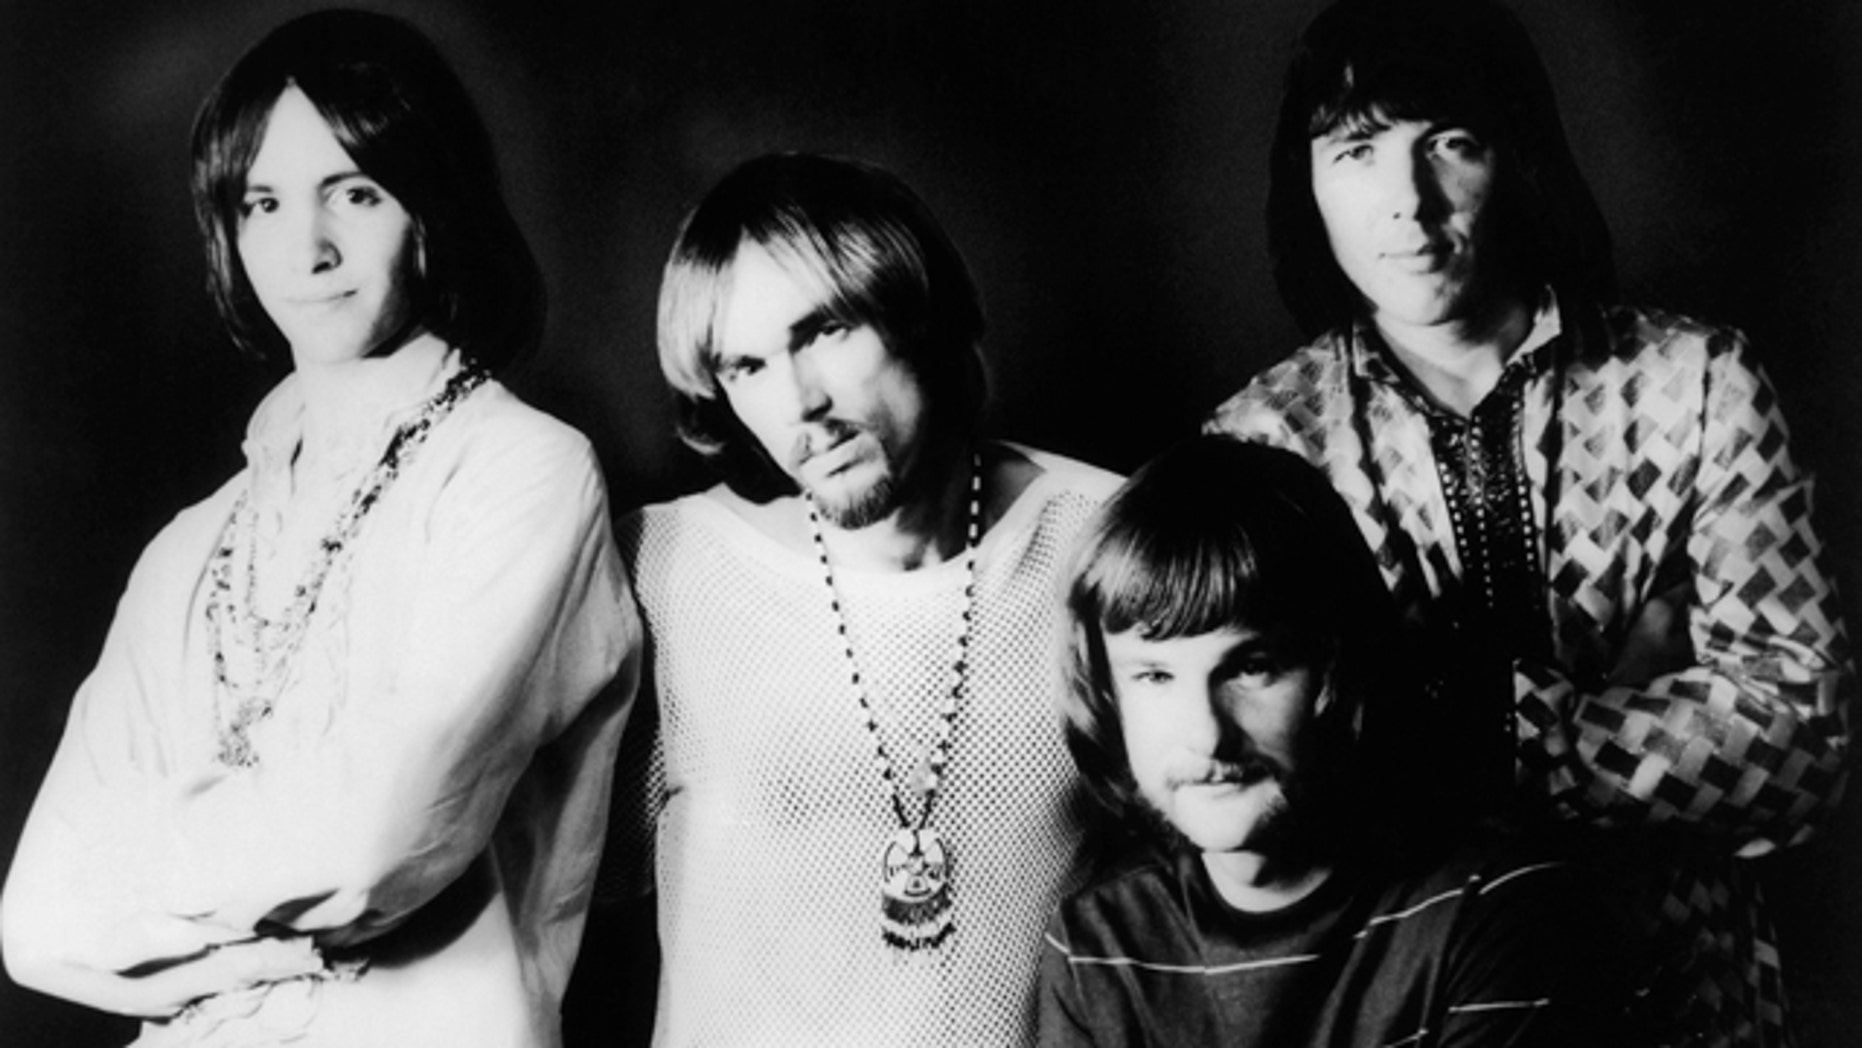 April 9, 1969: This photo shows members of Iron Butterfly, from left, Erik Brann, Ron Bushy, Lee Dorman, and Doug Ingle.